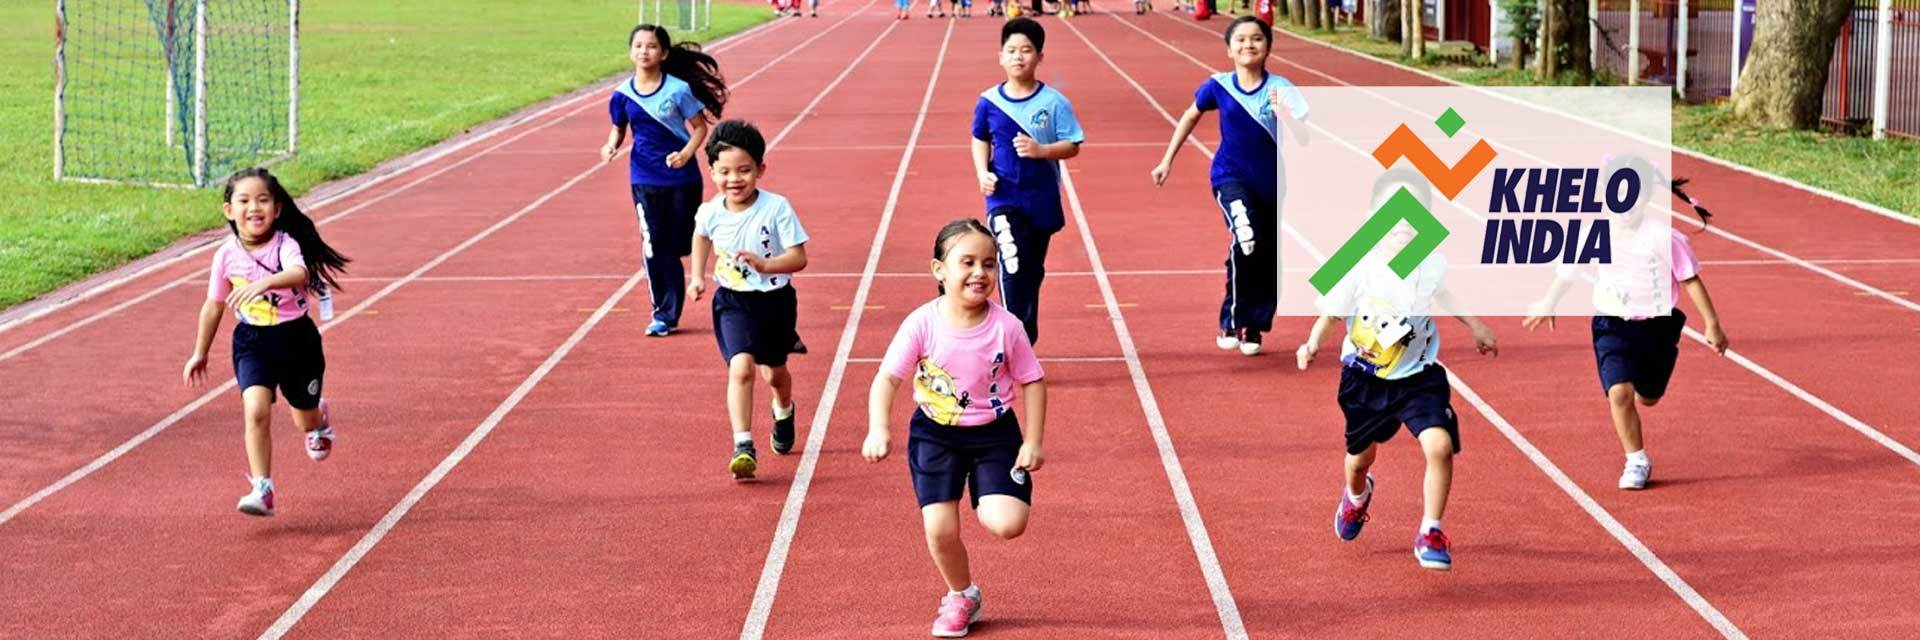 Event | Khelo India Youth Games 2019 - Athletics ...